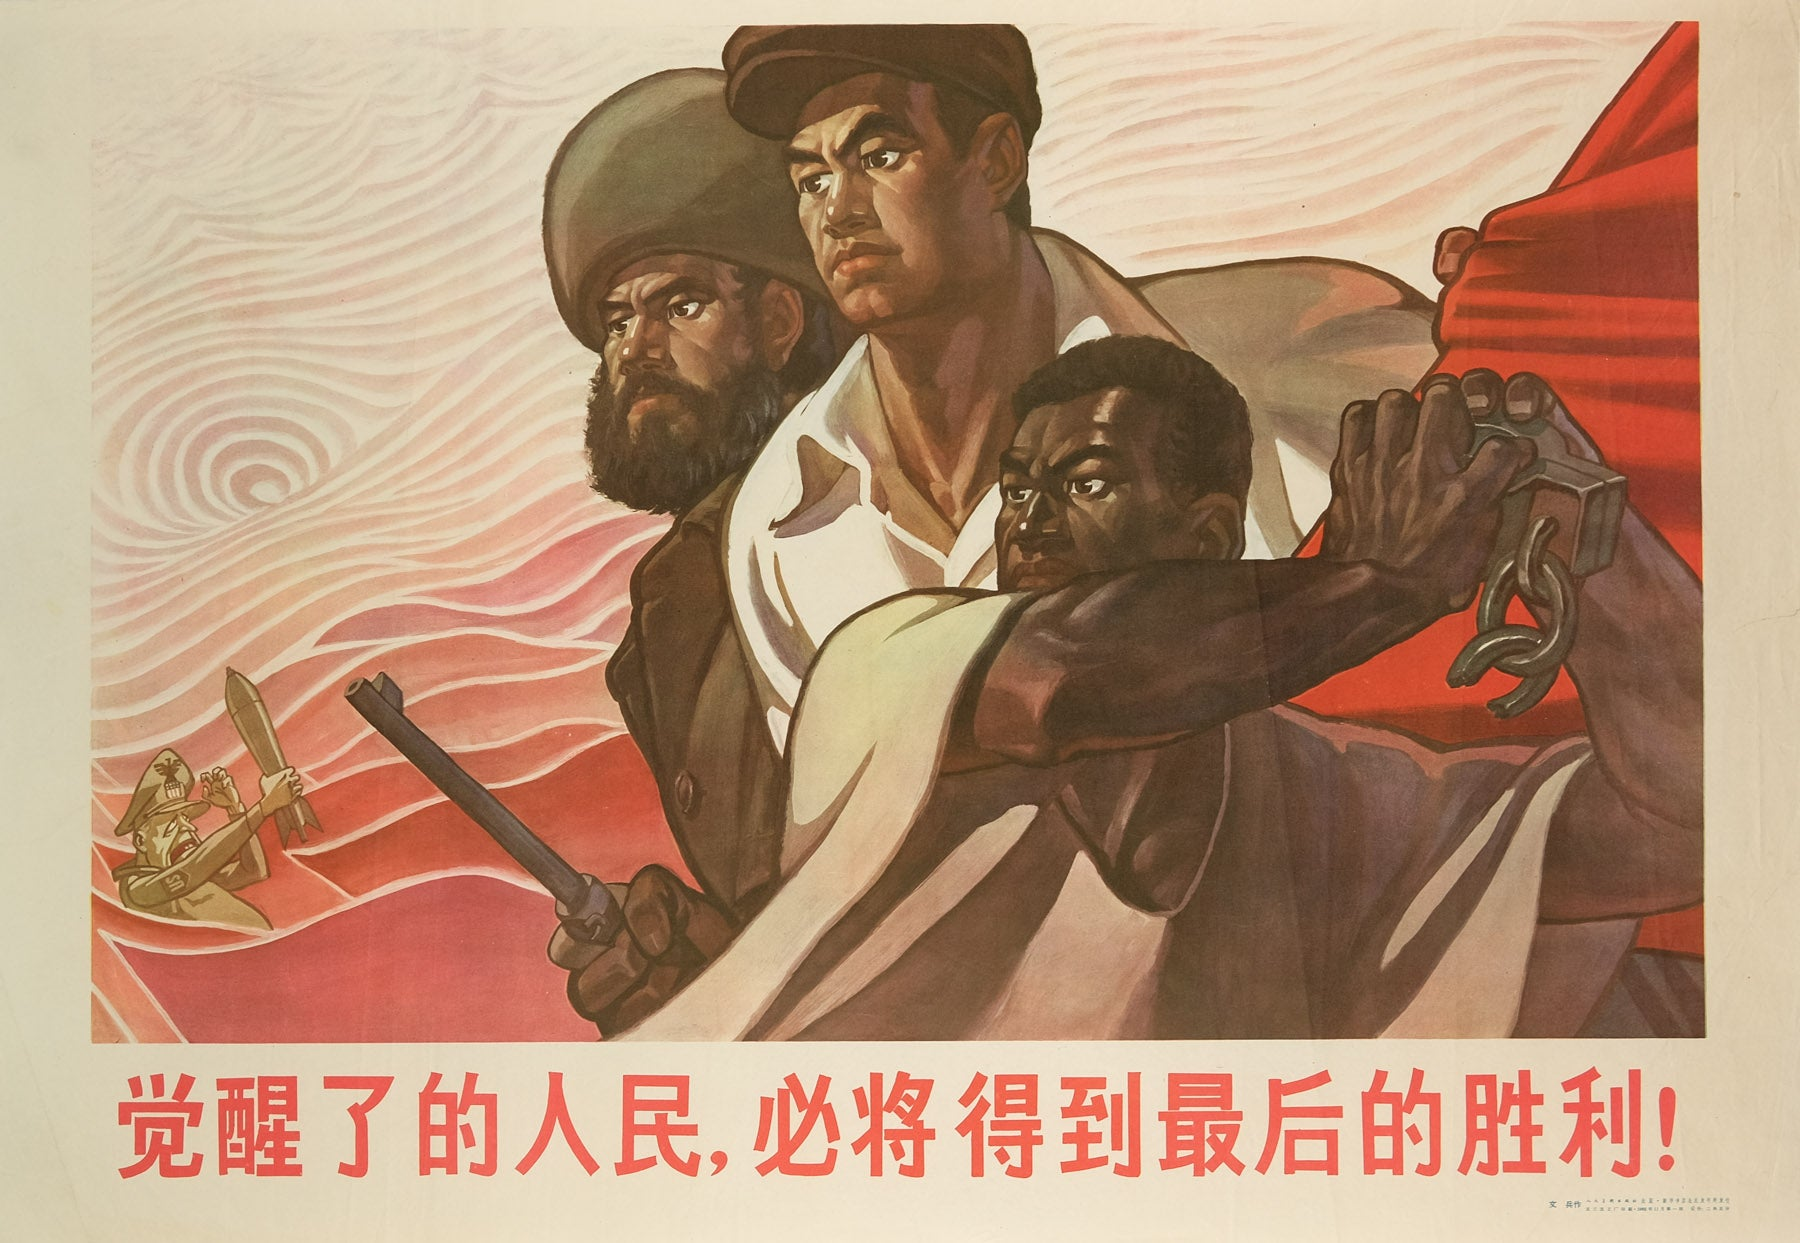 original vintage 1962 Chinese communist propaganda poster The peoples who have awoken to the truth by Wen Bing